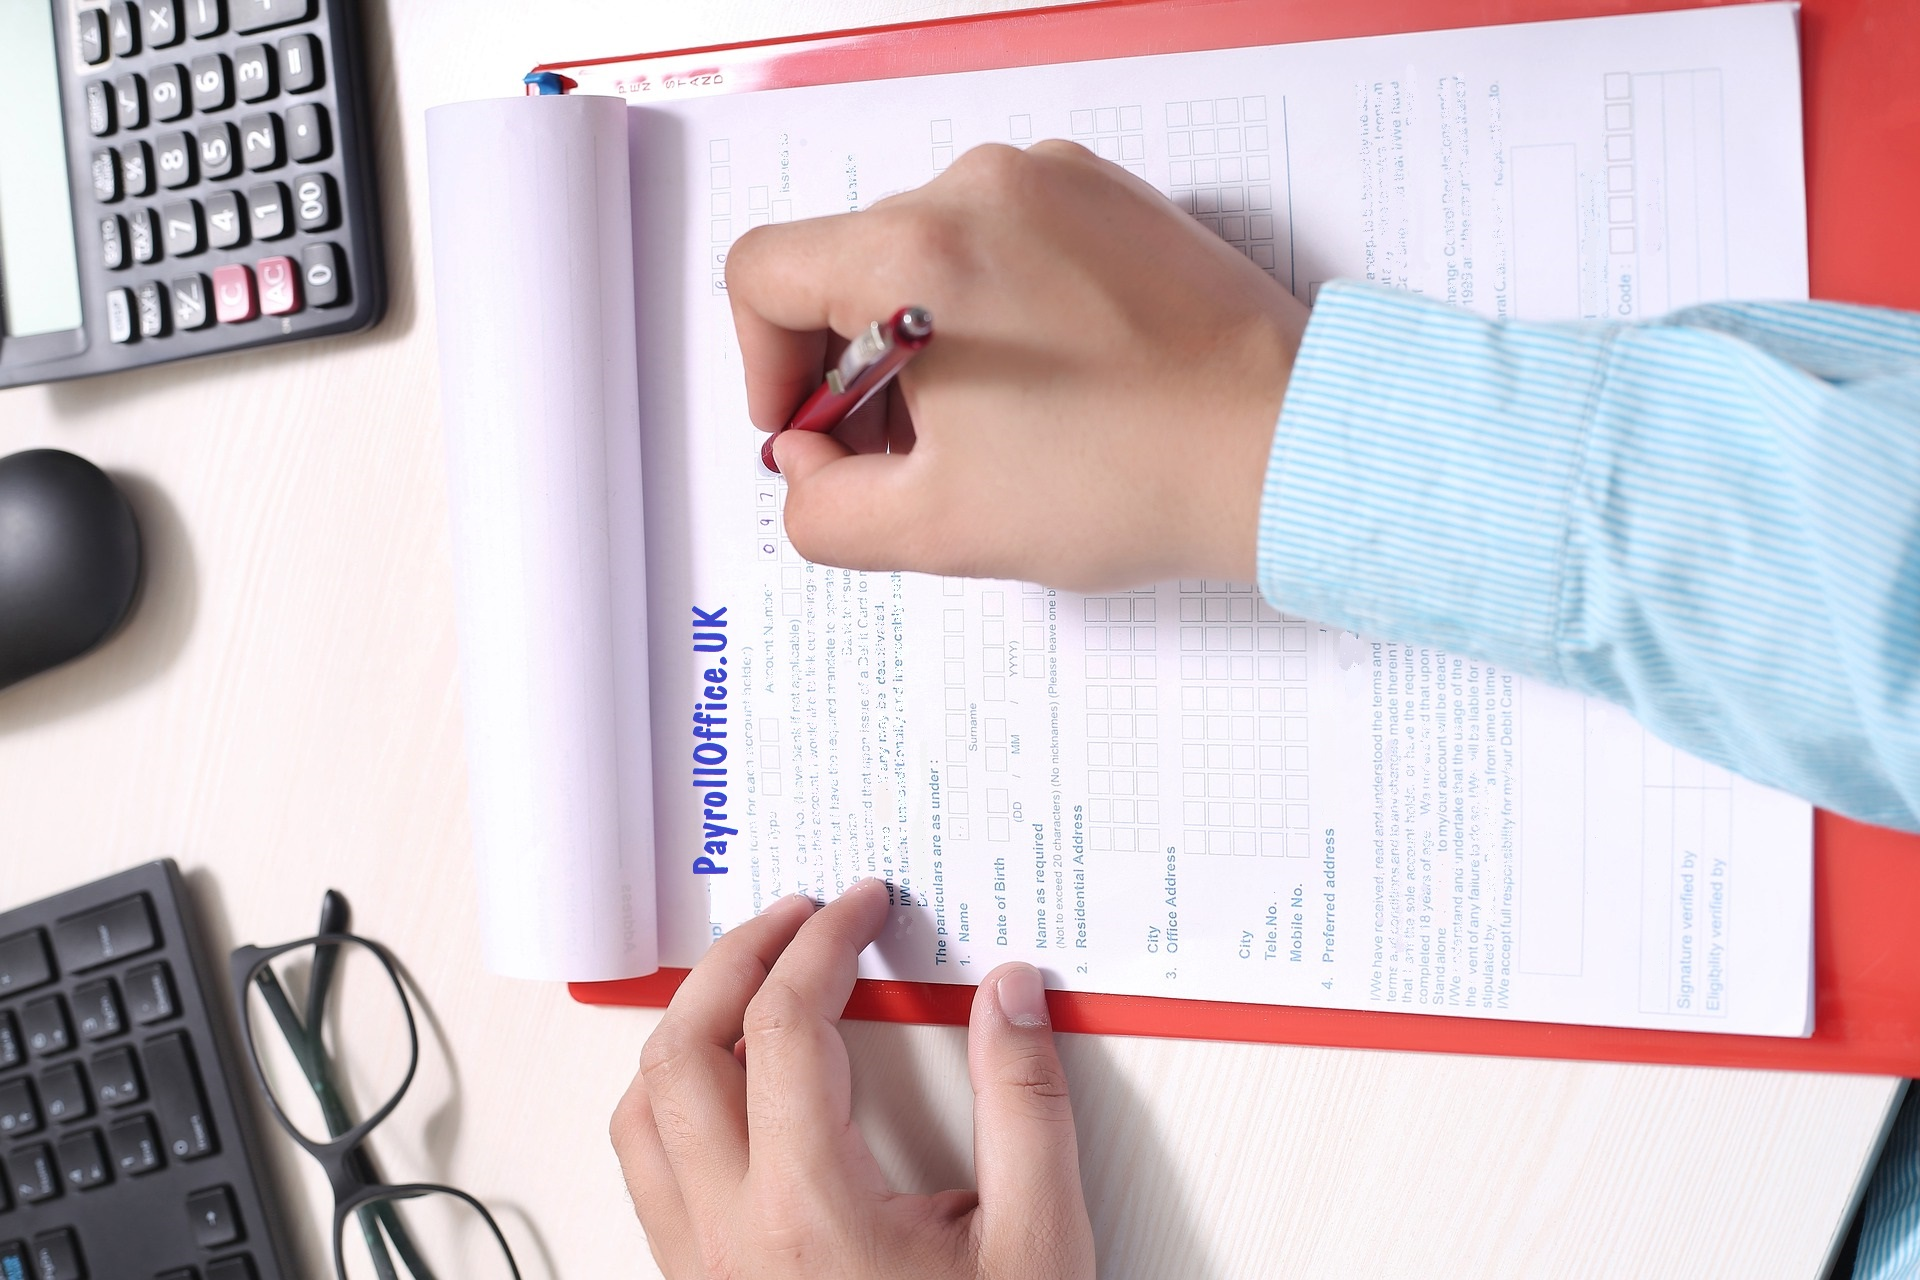 image someone completing a PayrollOfficeUK form by hand